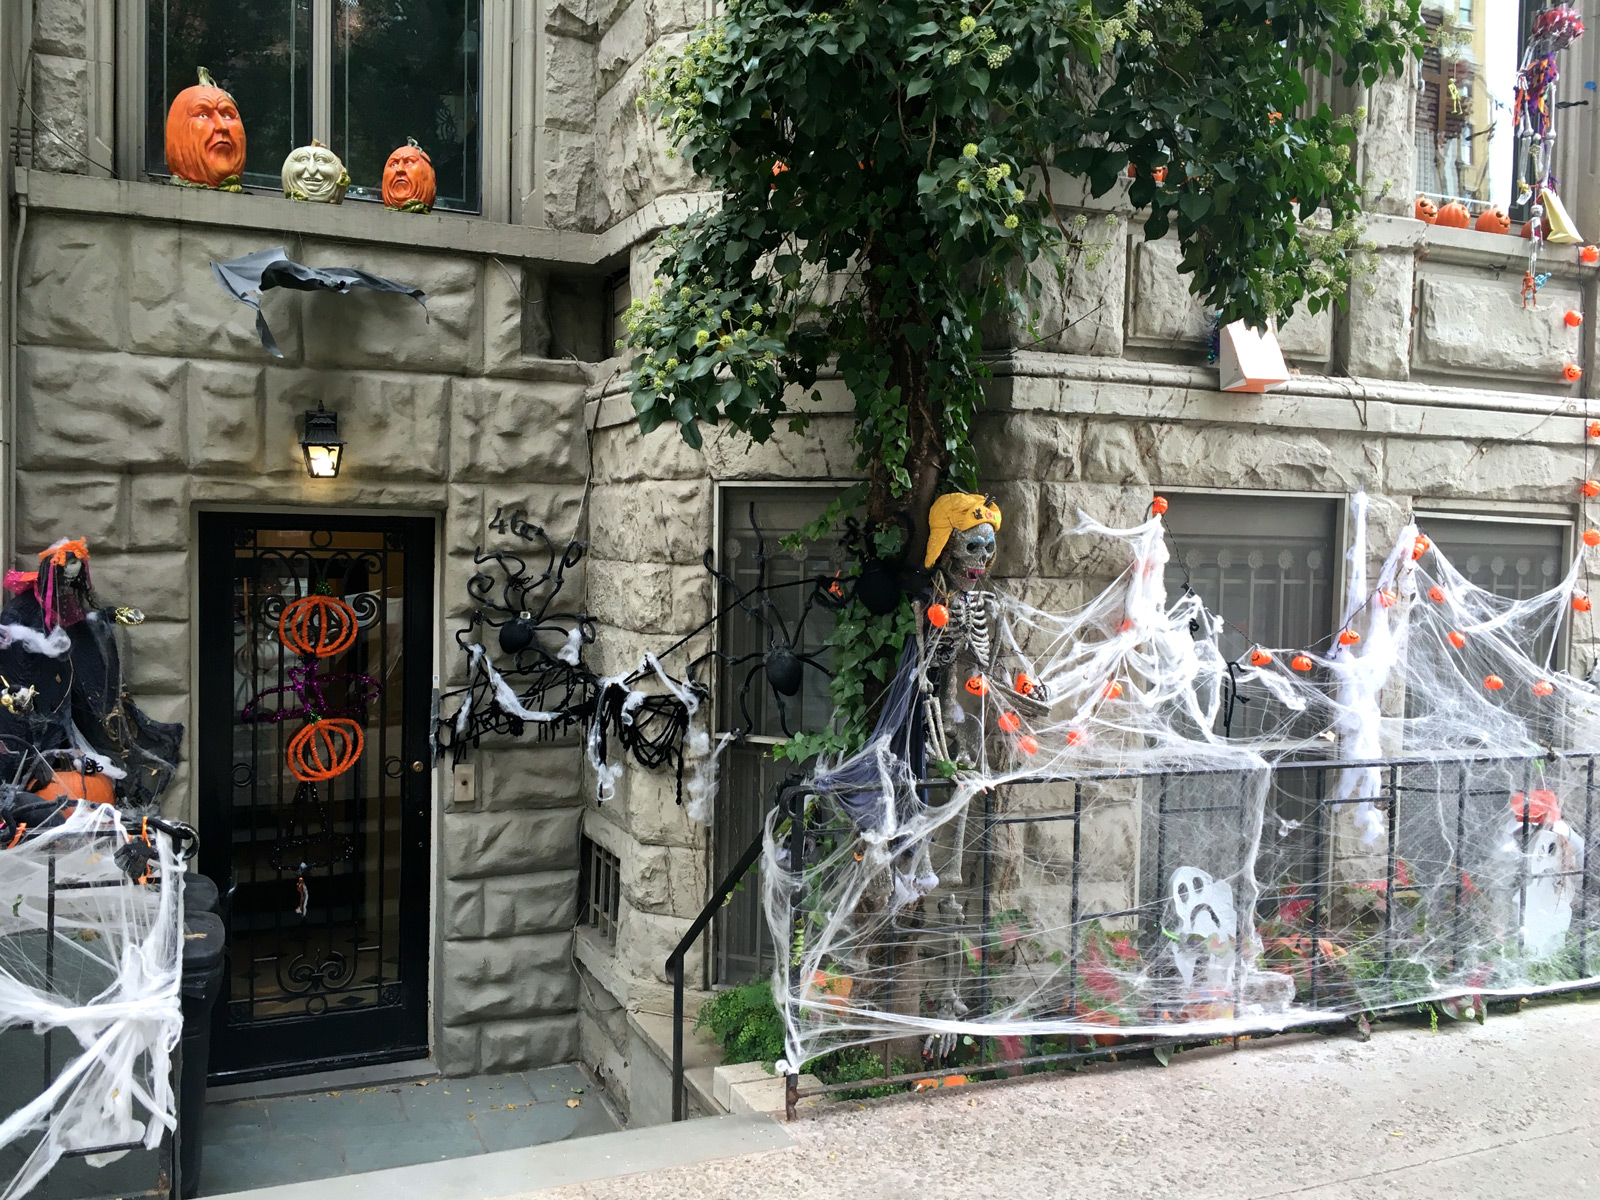 A decoration for a Halloween window display with spiderweb all over the front windows, different types of pumpkins, sculpted in different ways, and little pumpkins placed on the spiderweb.